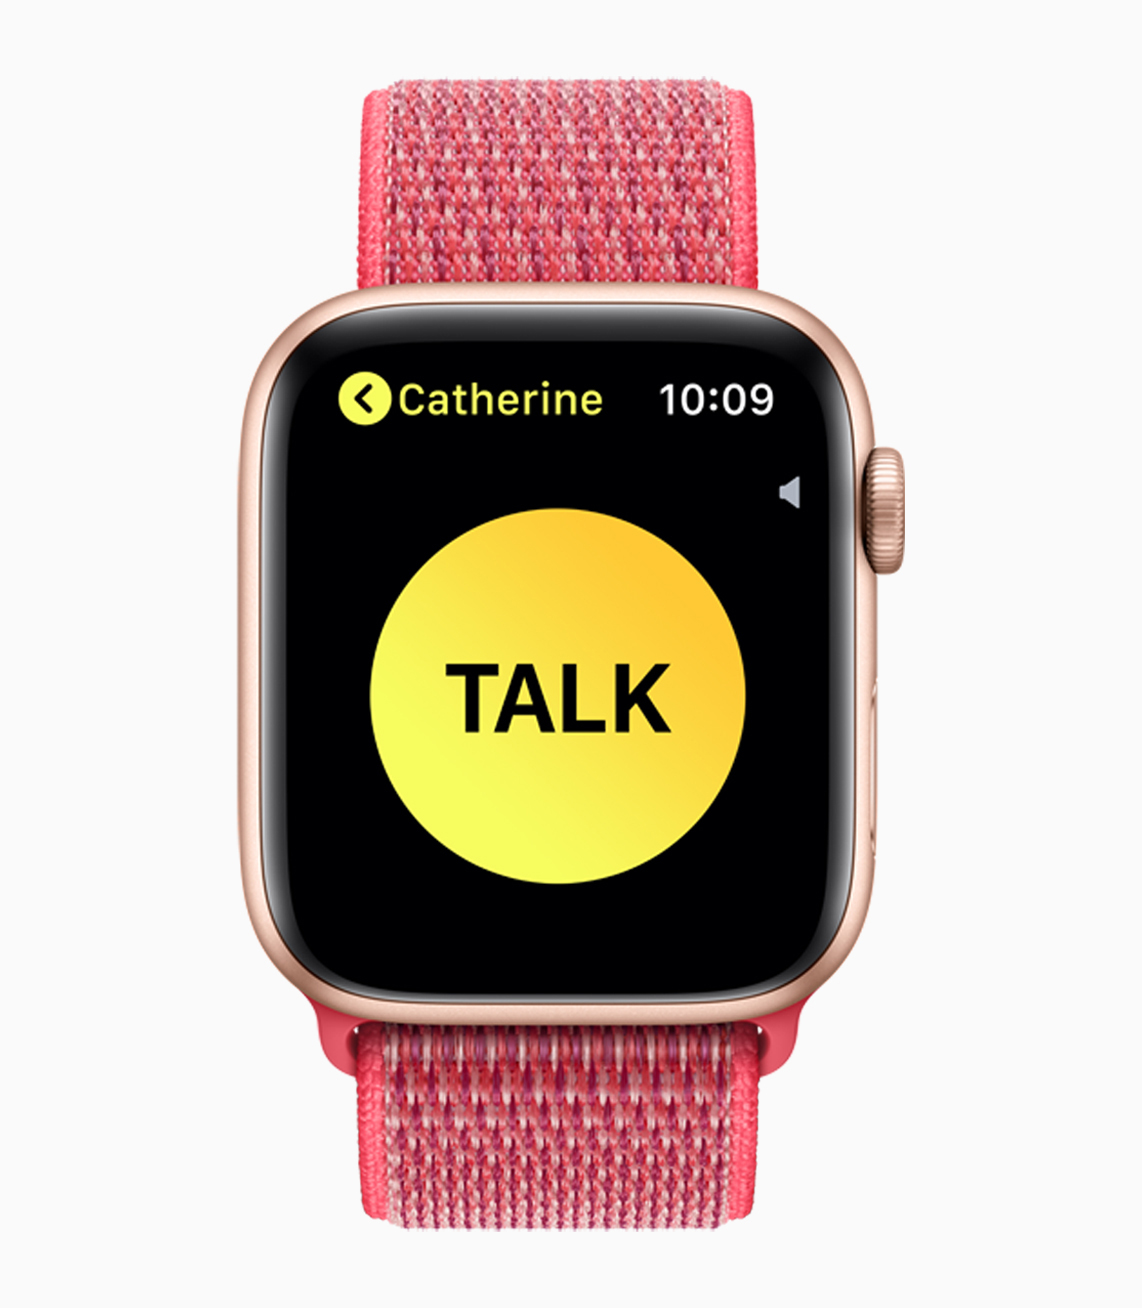 https://www.apple.com/newsroom/images/product/watch/standard/apple-watch-series4_walkie-talkie_09122018_carousel.jpg.large_2x.jpg